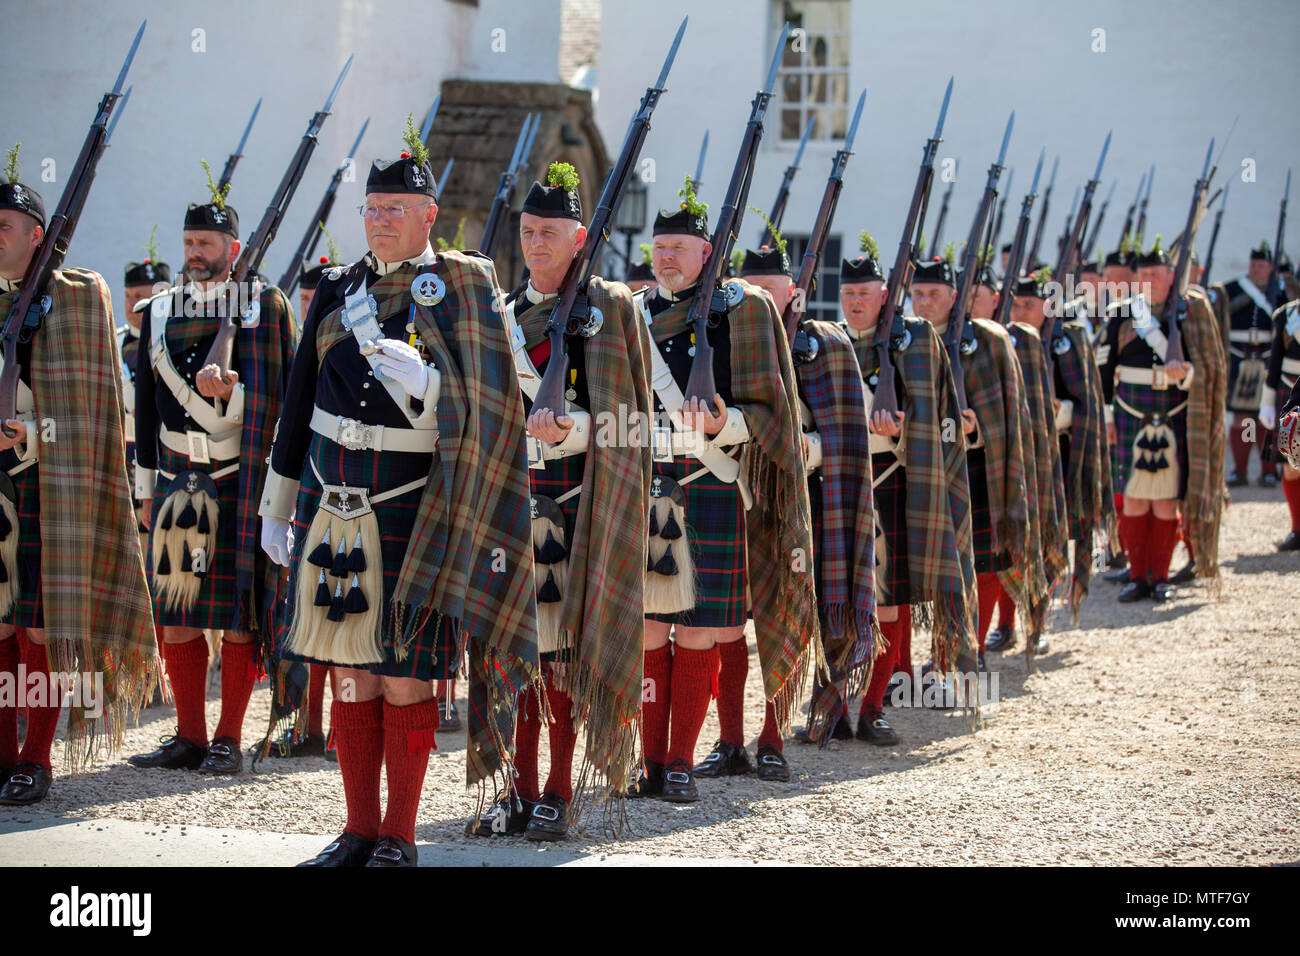 The Atholl Highlanders on parade at Blair Castle in Perthshire, Scotland. Stock Photo